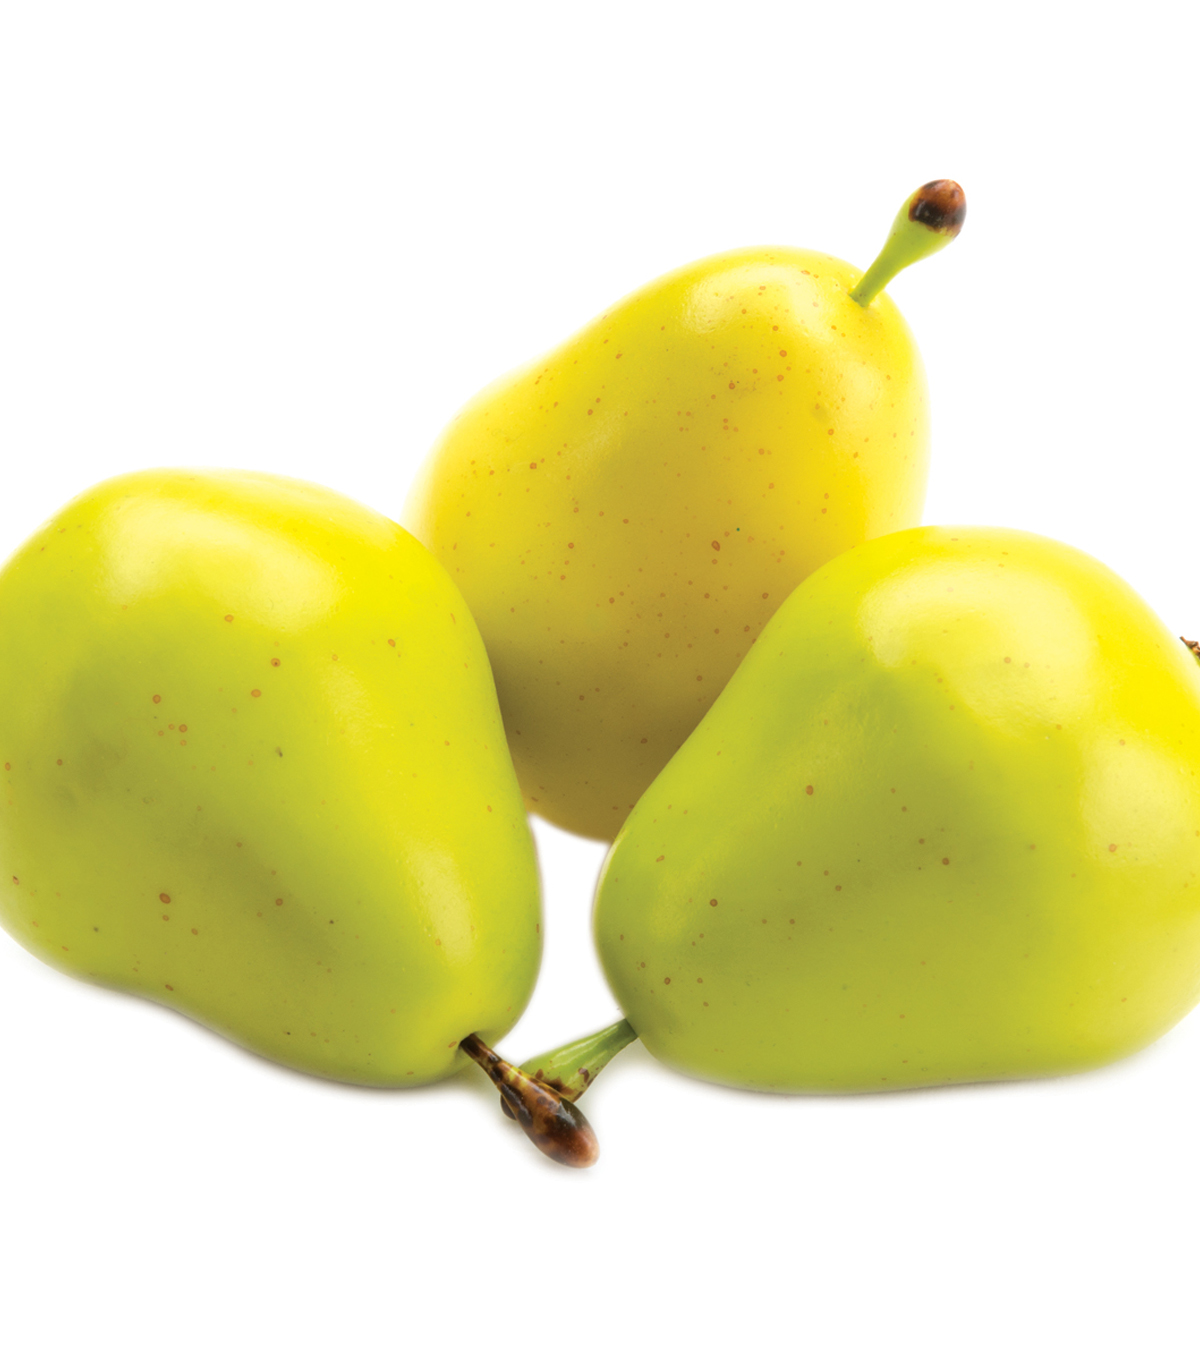 Design It Simple Decorative Fruit-Yellow & Green Pears